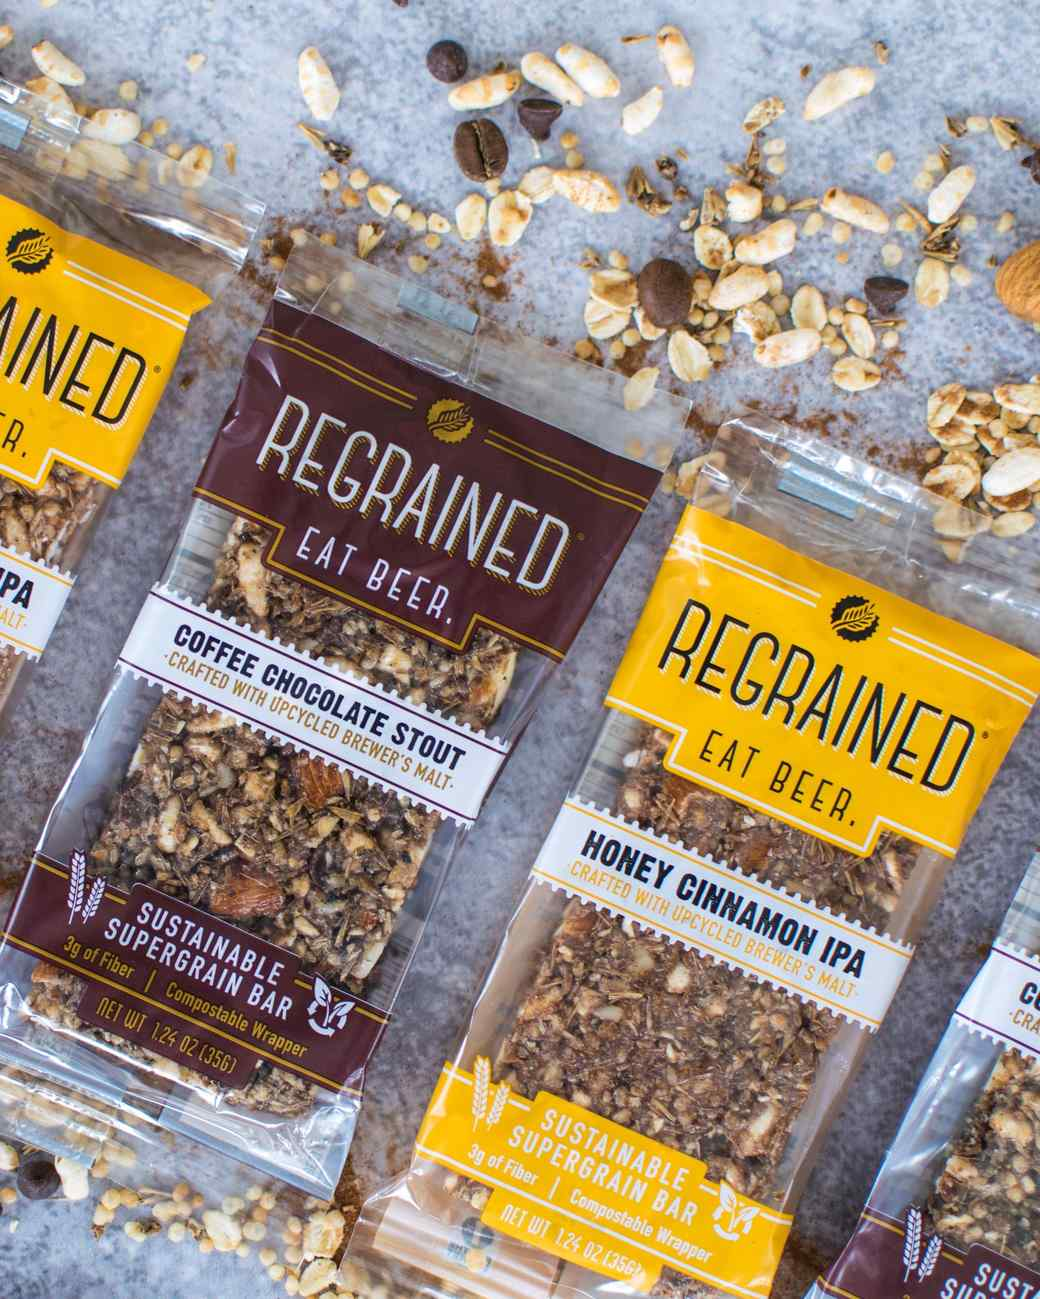 upcycled-food-regrained-bars-0517